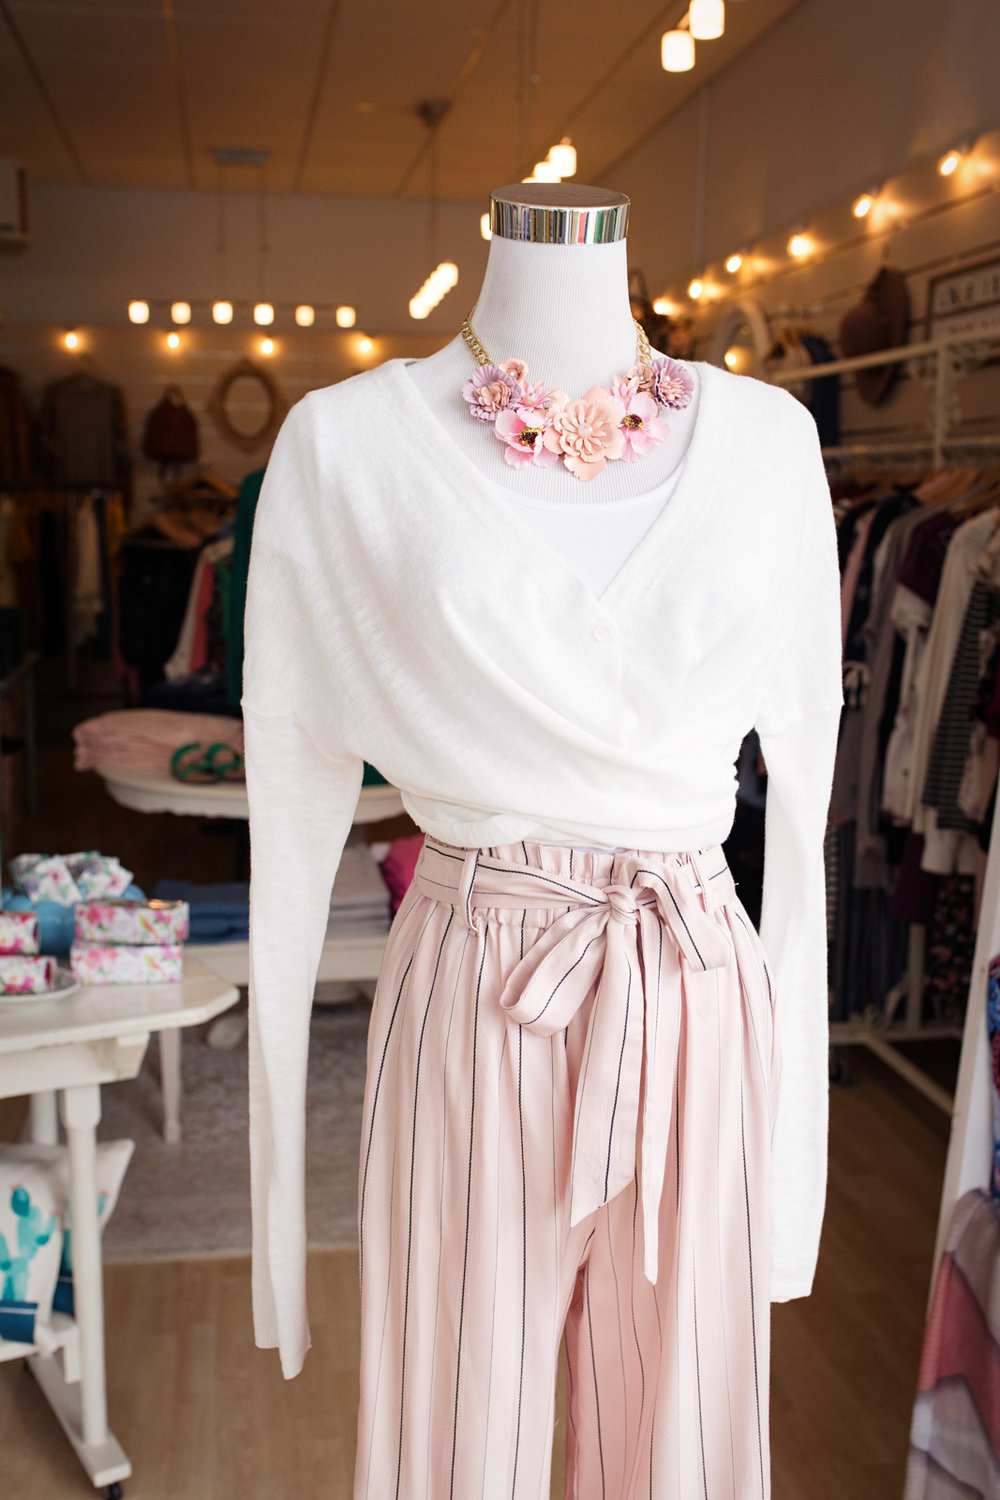 Meadow boutique seattle retail clothing store Yuliya Rae photography branding services-2.jpg